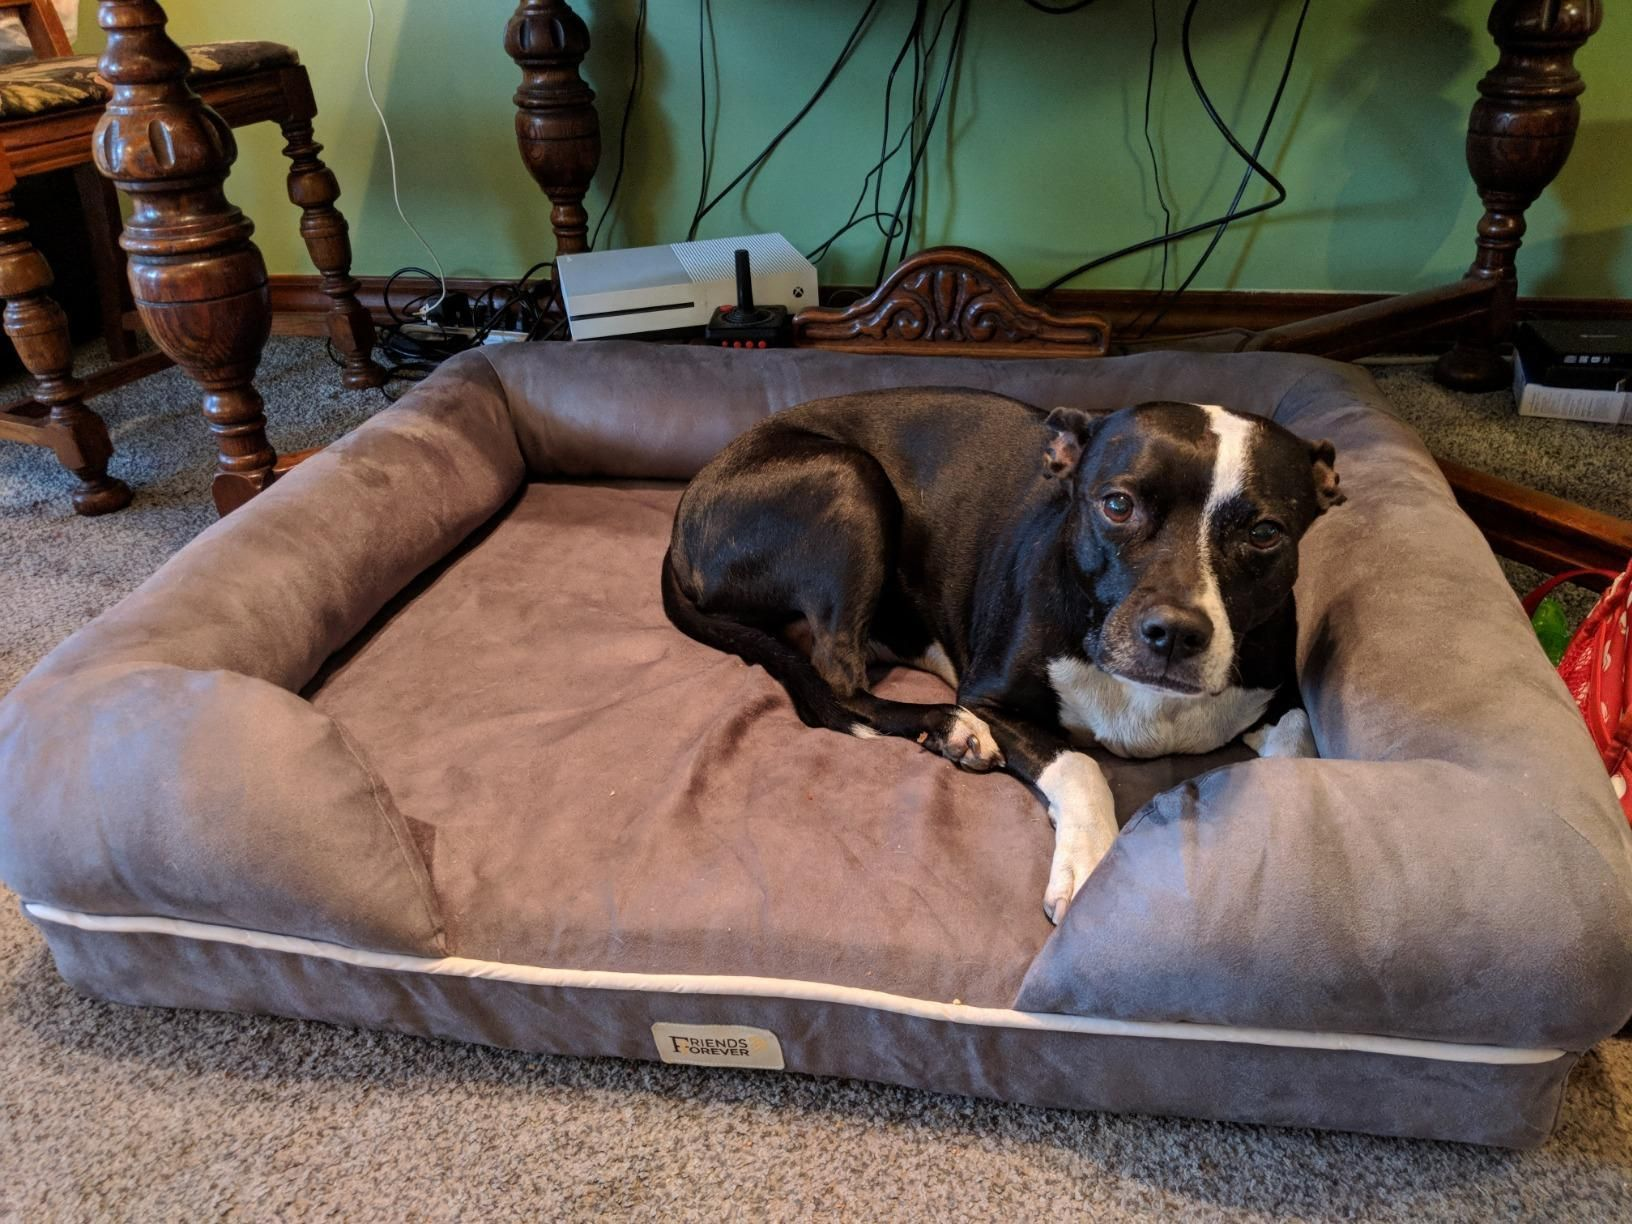 Huge Clearance Is Perfect For A Couple Smaller Pets Who Like It Cozy Or 1 Medium Dog Or 1 Large Dog Breed Up To 75lbs G Cool Dog Beds Large Dog